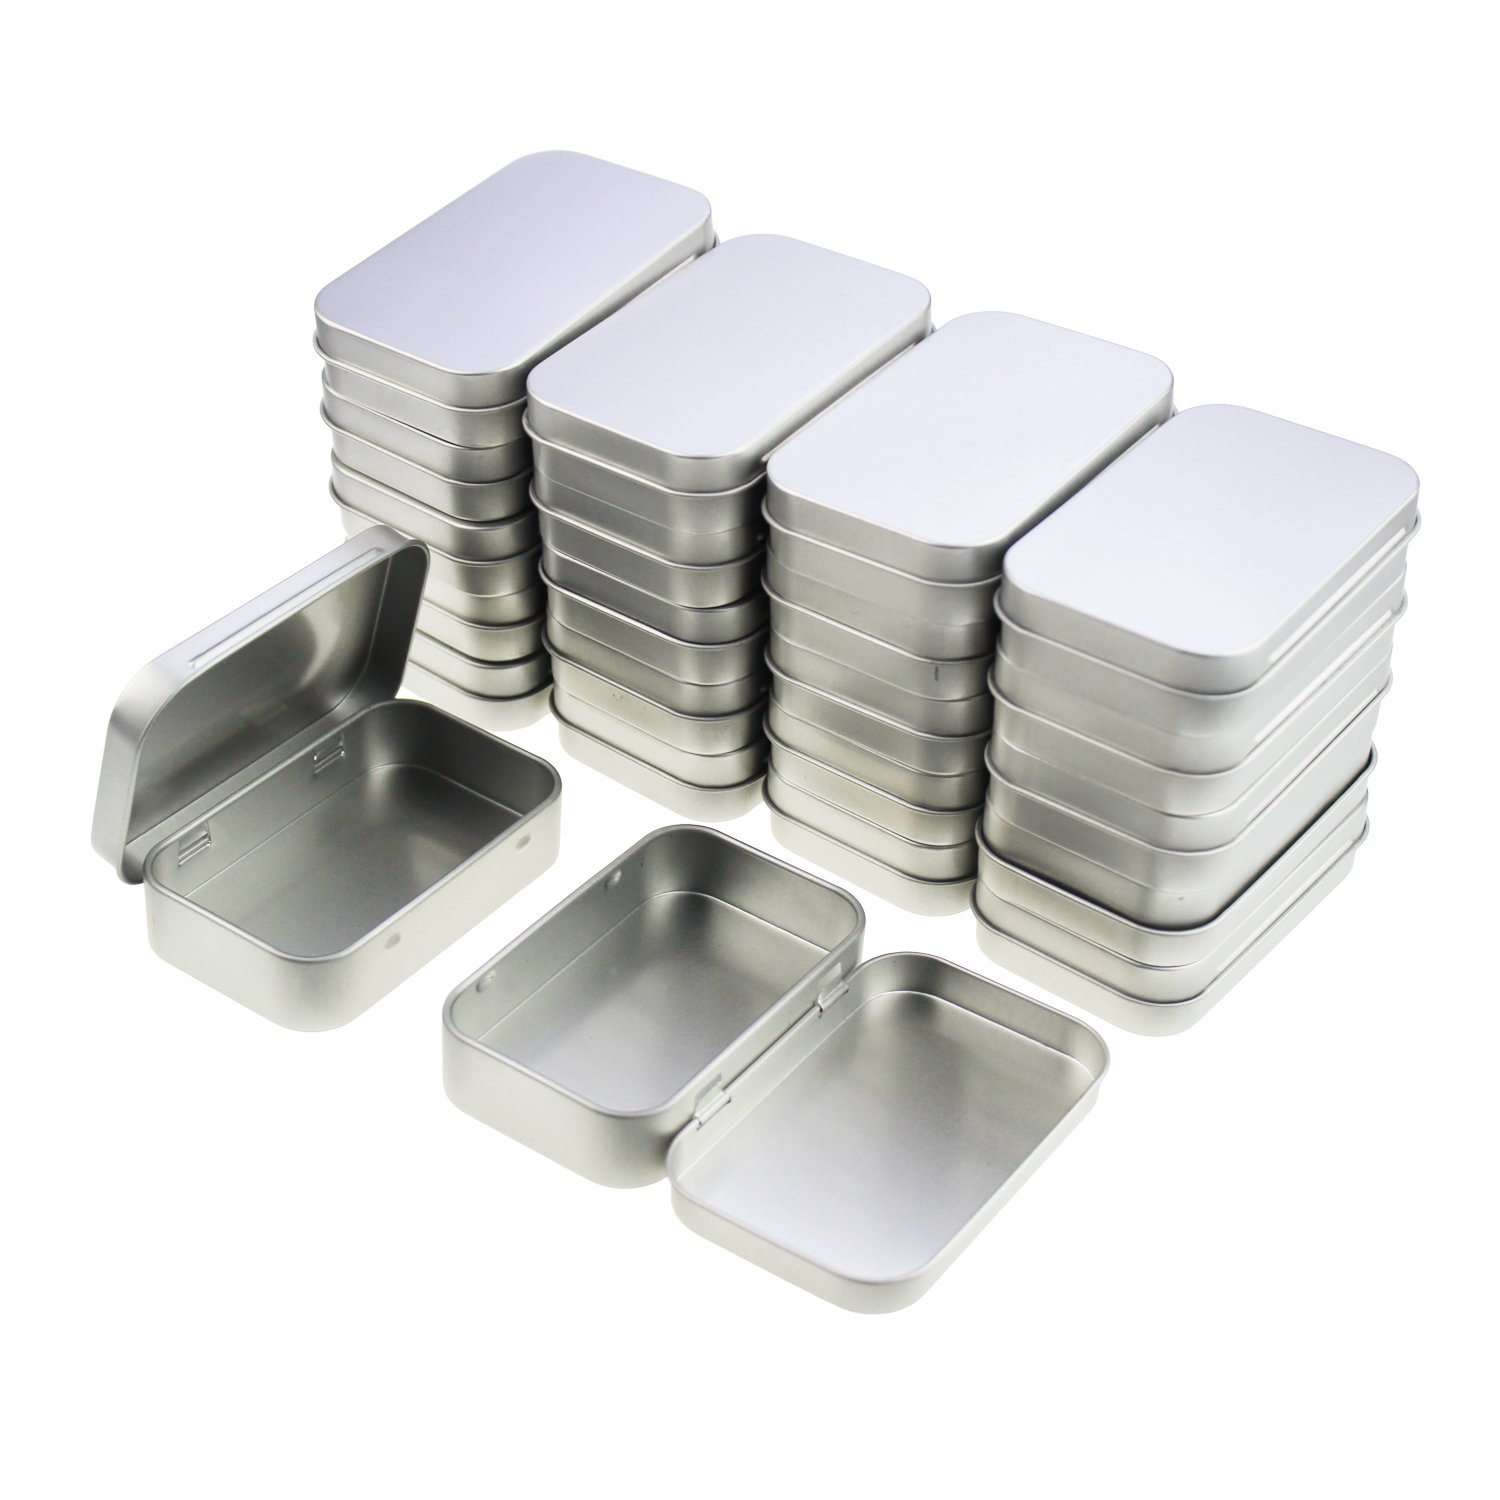 LJY 22 Pieces Rectangular Metal Empty Hinged Tins Containers Basic Necessities Home Storage Organizer Mini Box Set (95 x 62 x 20 mm) 4336940059